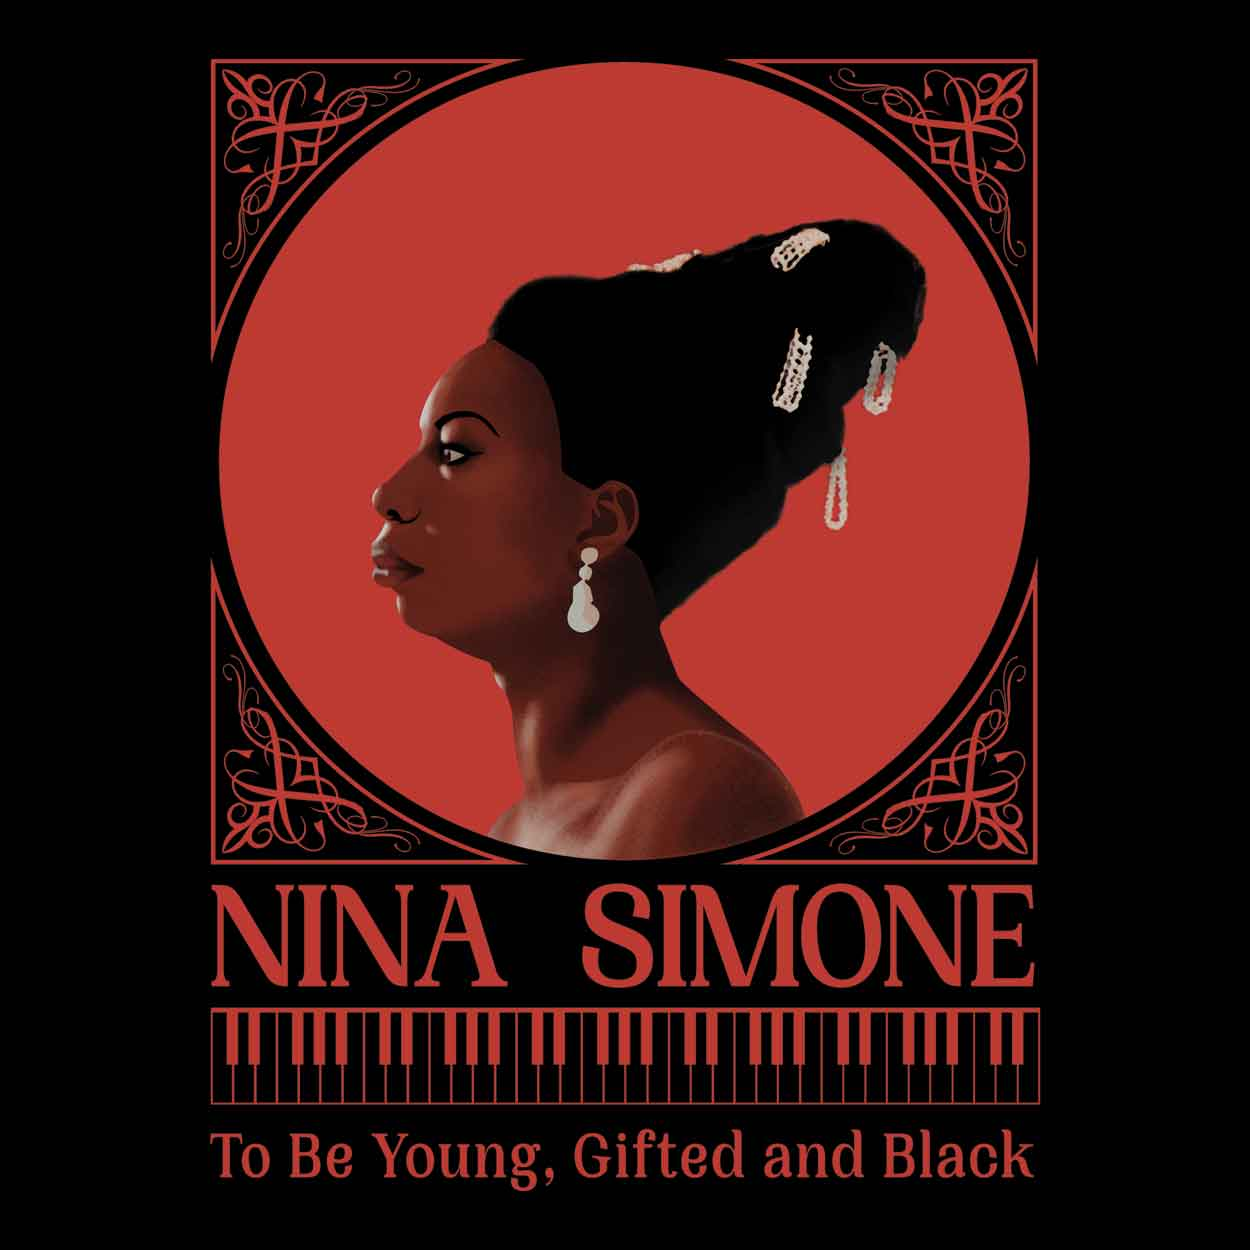 Camiseta - To Be Young, Gifted And Black - Nina Simone - Masculino